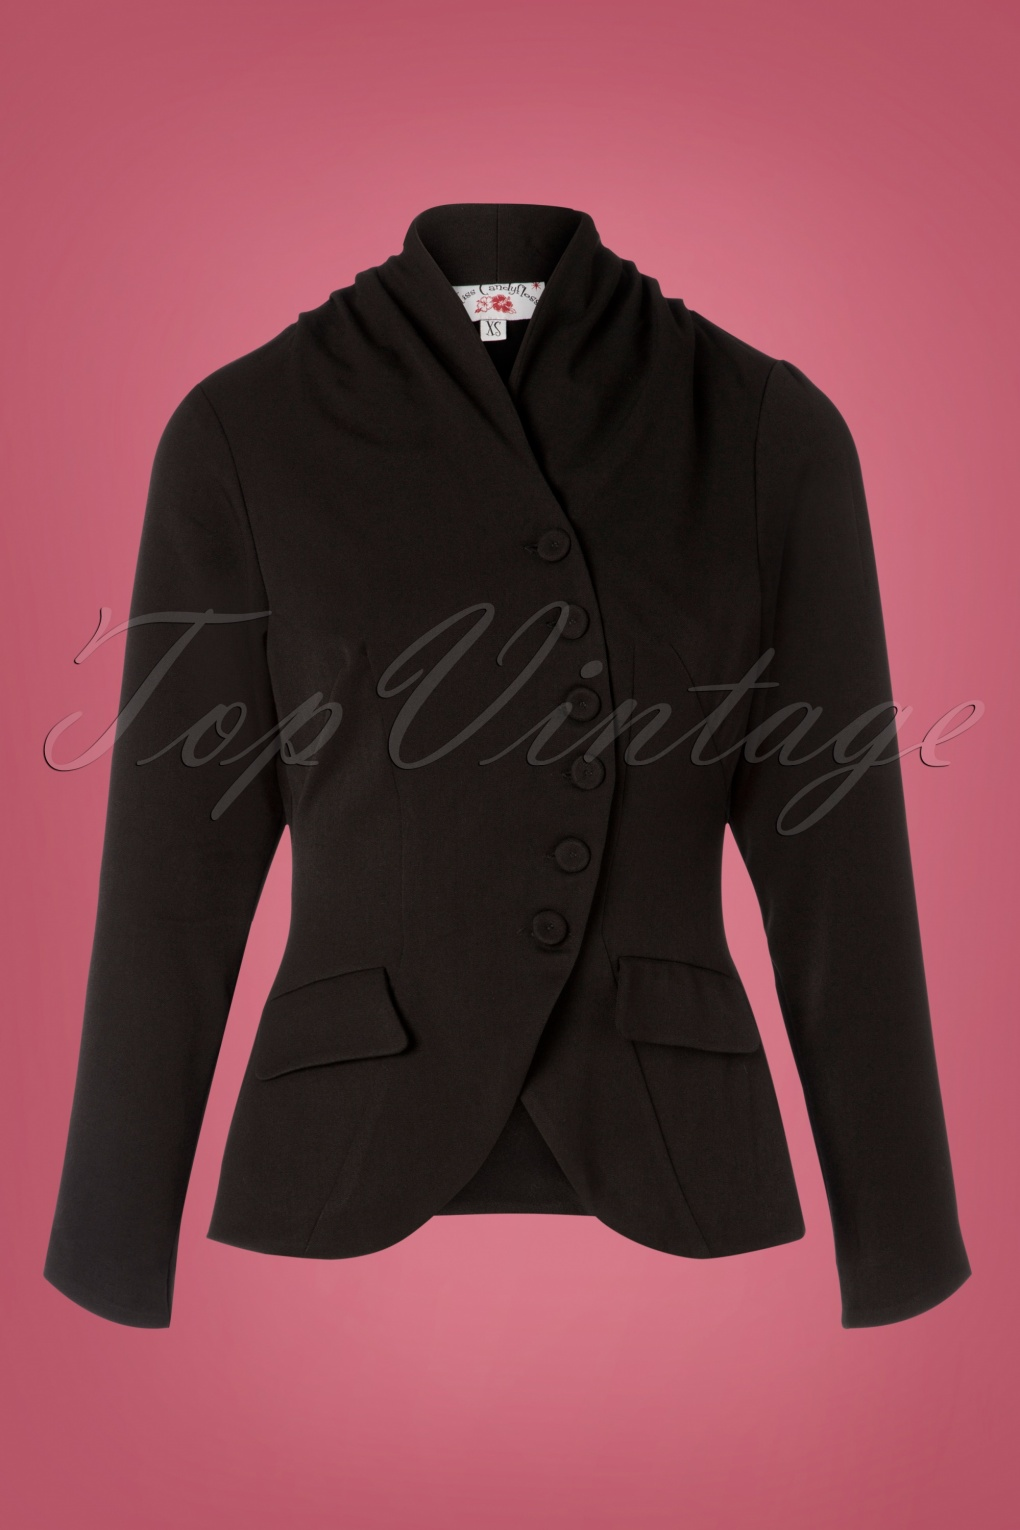 Vintage Coats & Jackets | Retro Coats and Jackets TopVintage exclusive  40s Clemence Jacket in Black £71.26 AT vintagedancer.com